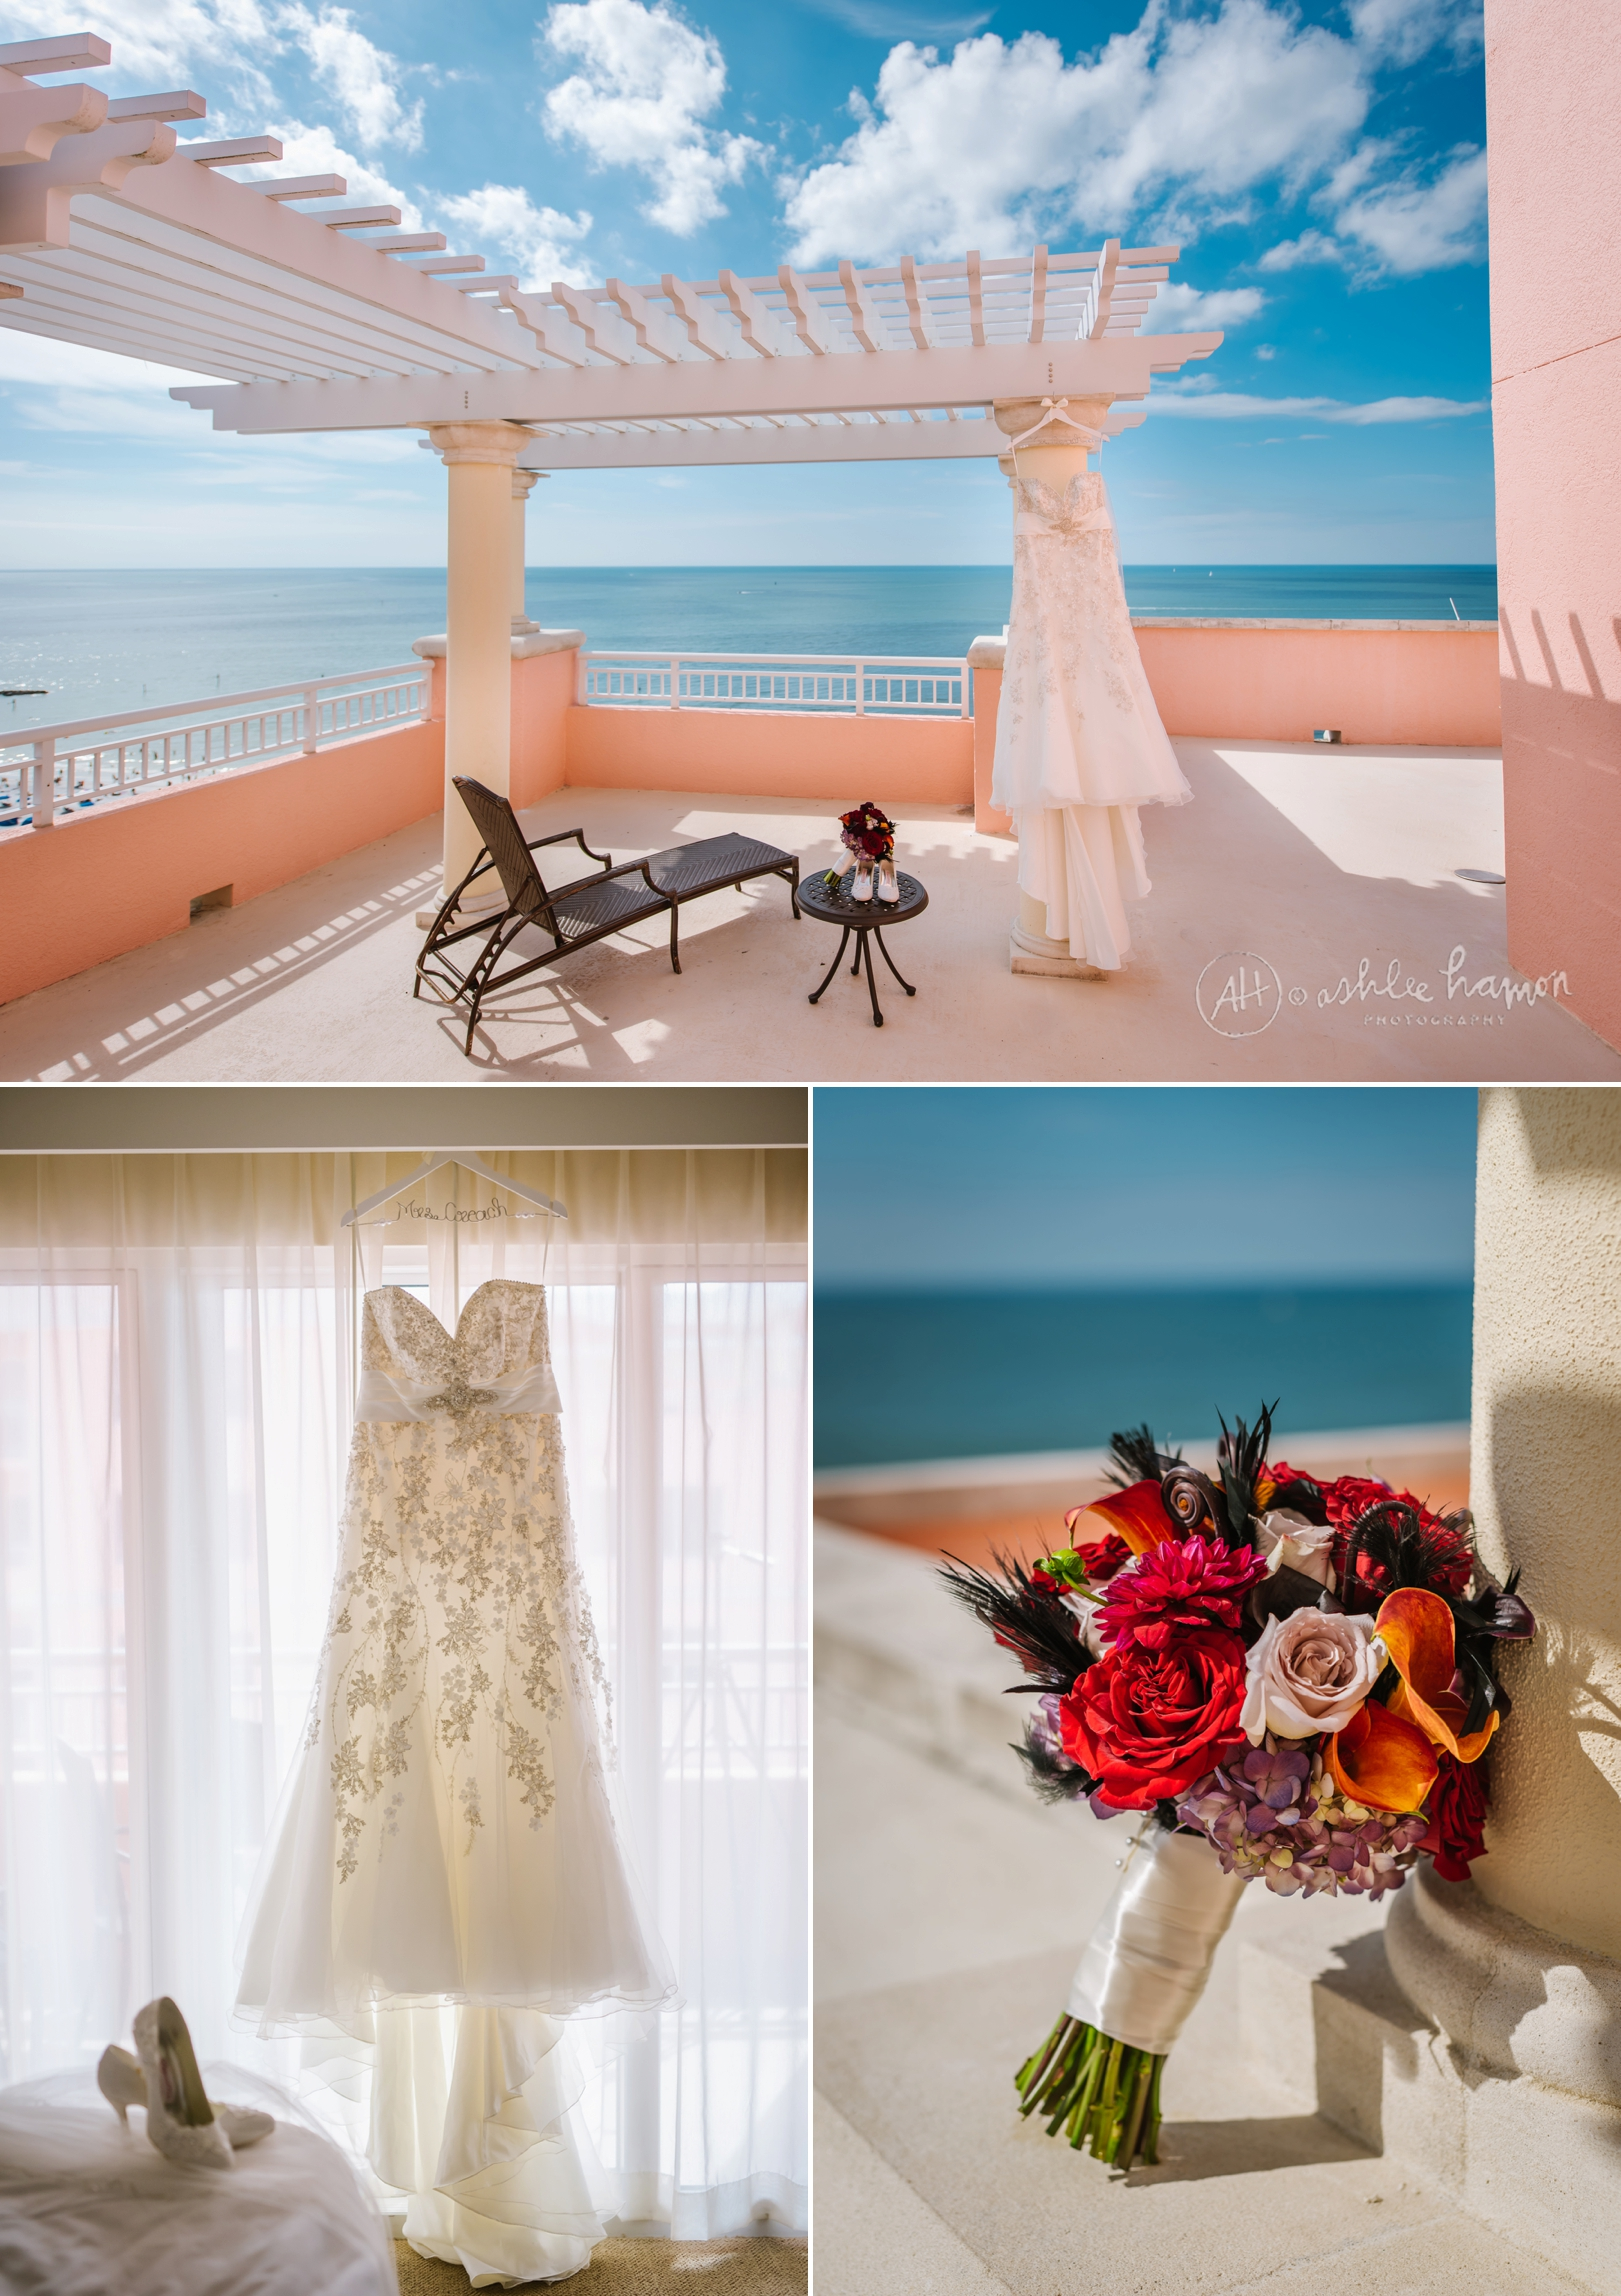 clearwater-beach-hyatt-masquerade-ballroom-themed-wedding-photograpy_0000.jpg